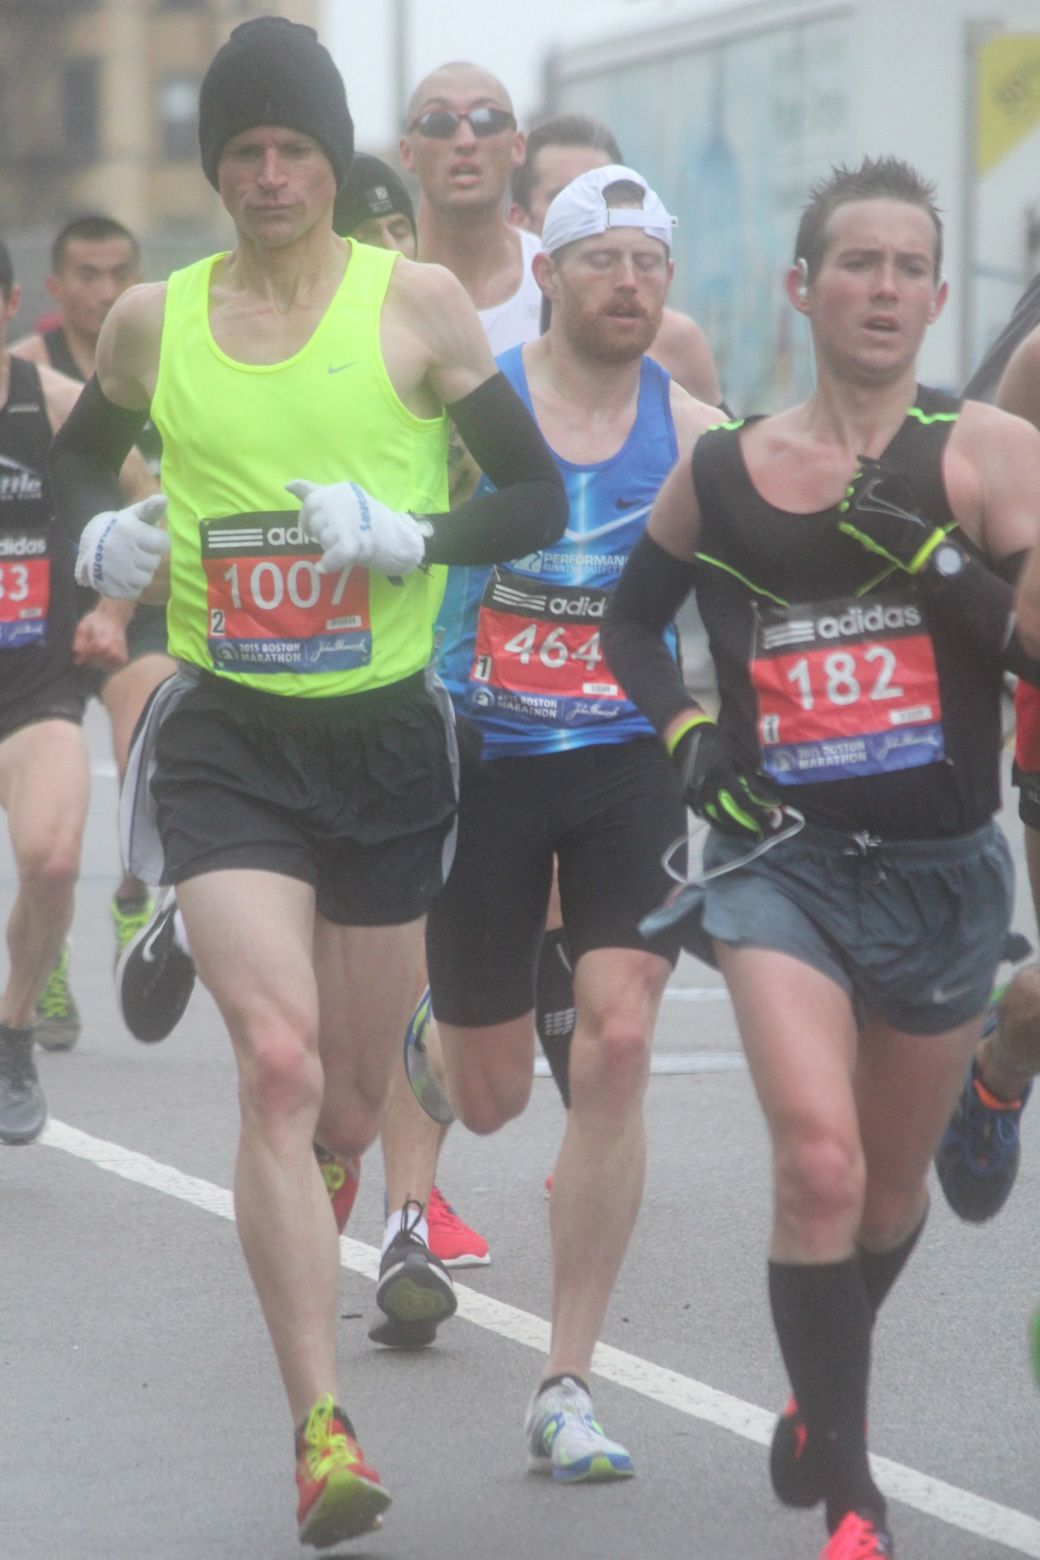 boston marathon april 20 2015 racer number 1007